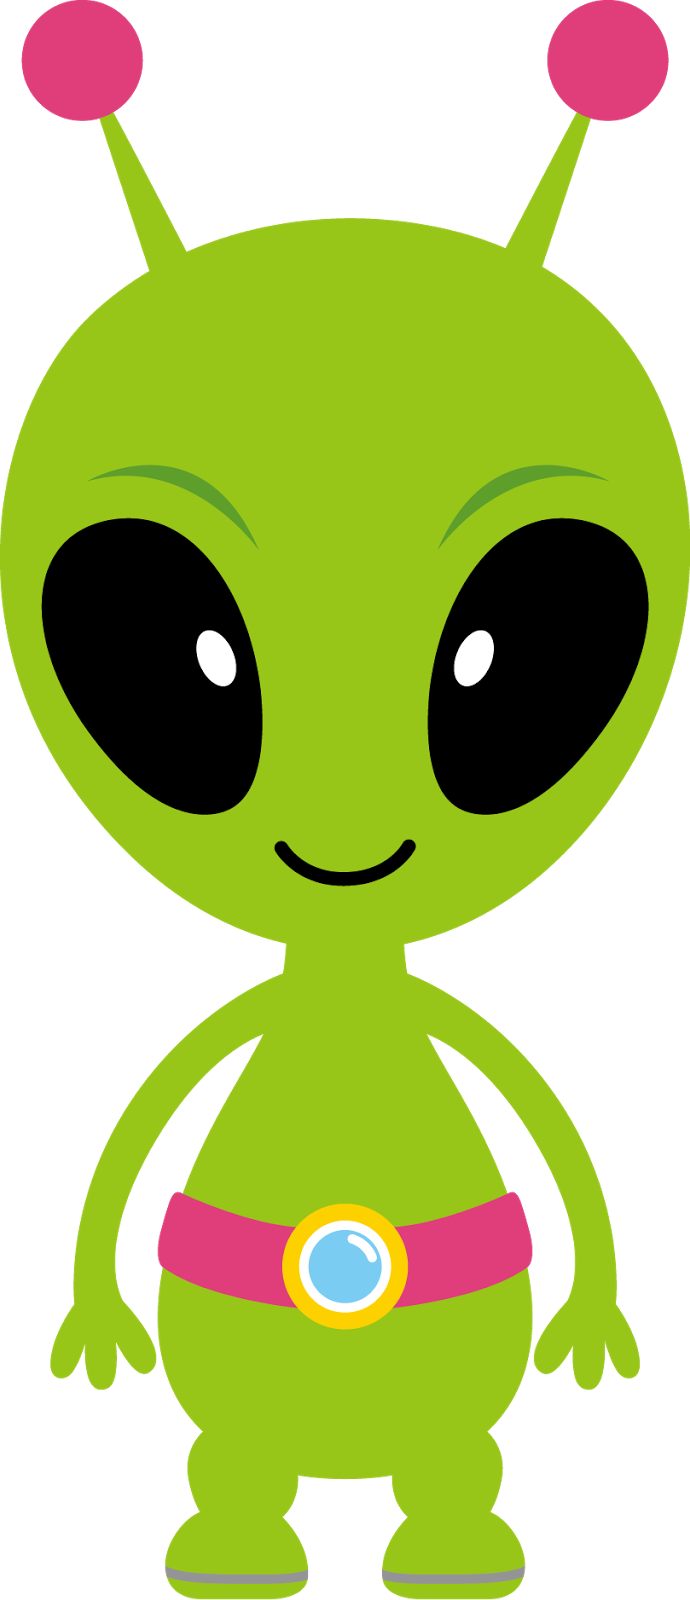 Spaceship clipart bmp.  collection of alien